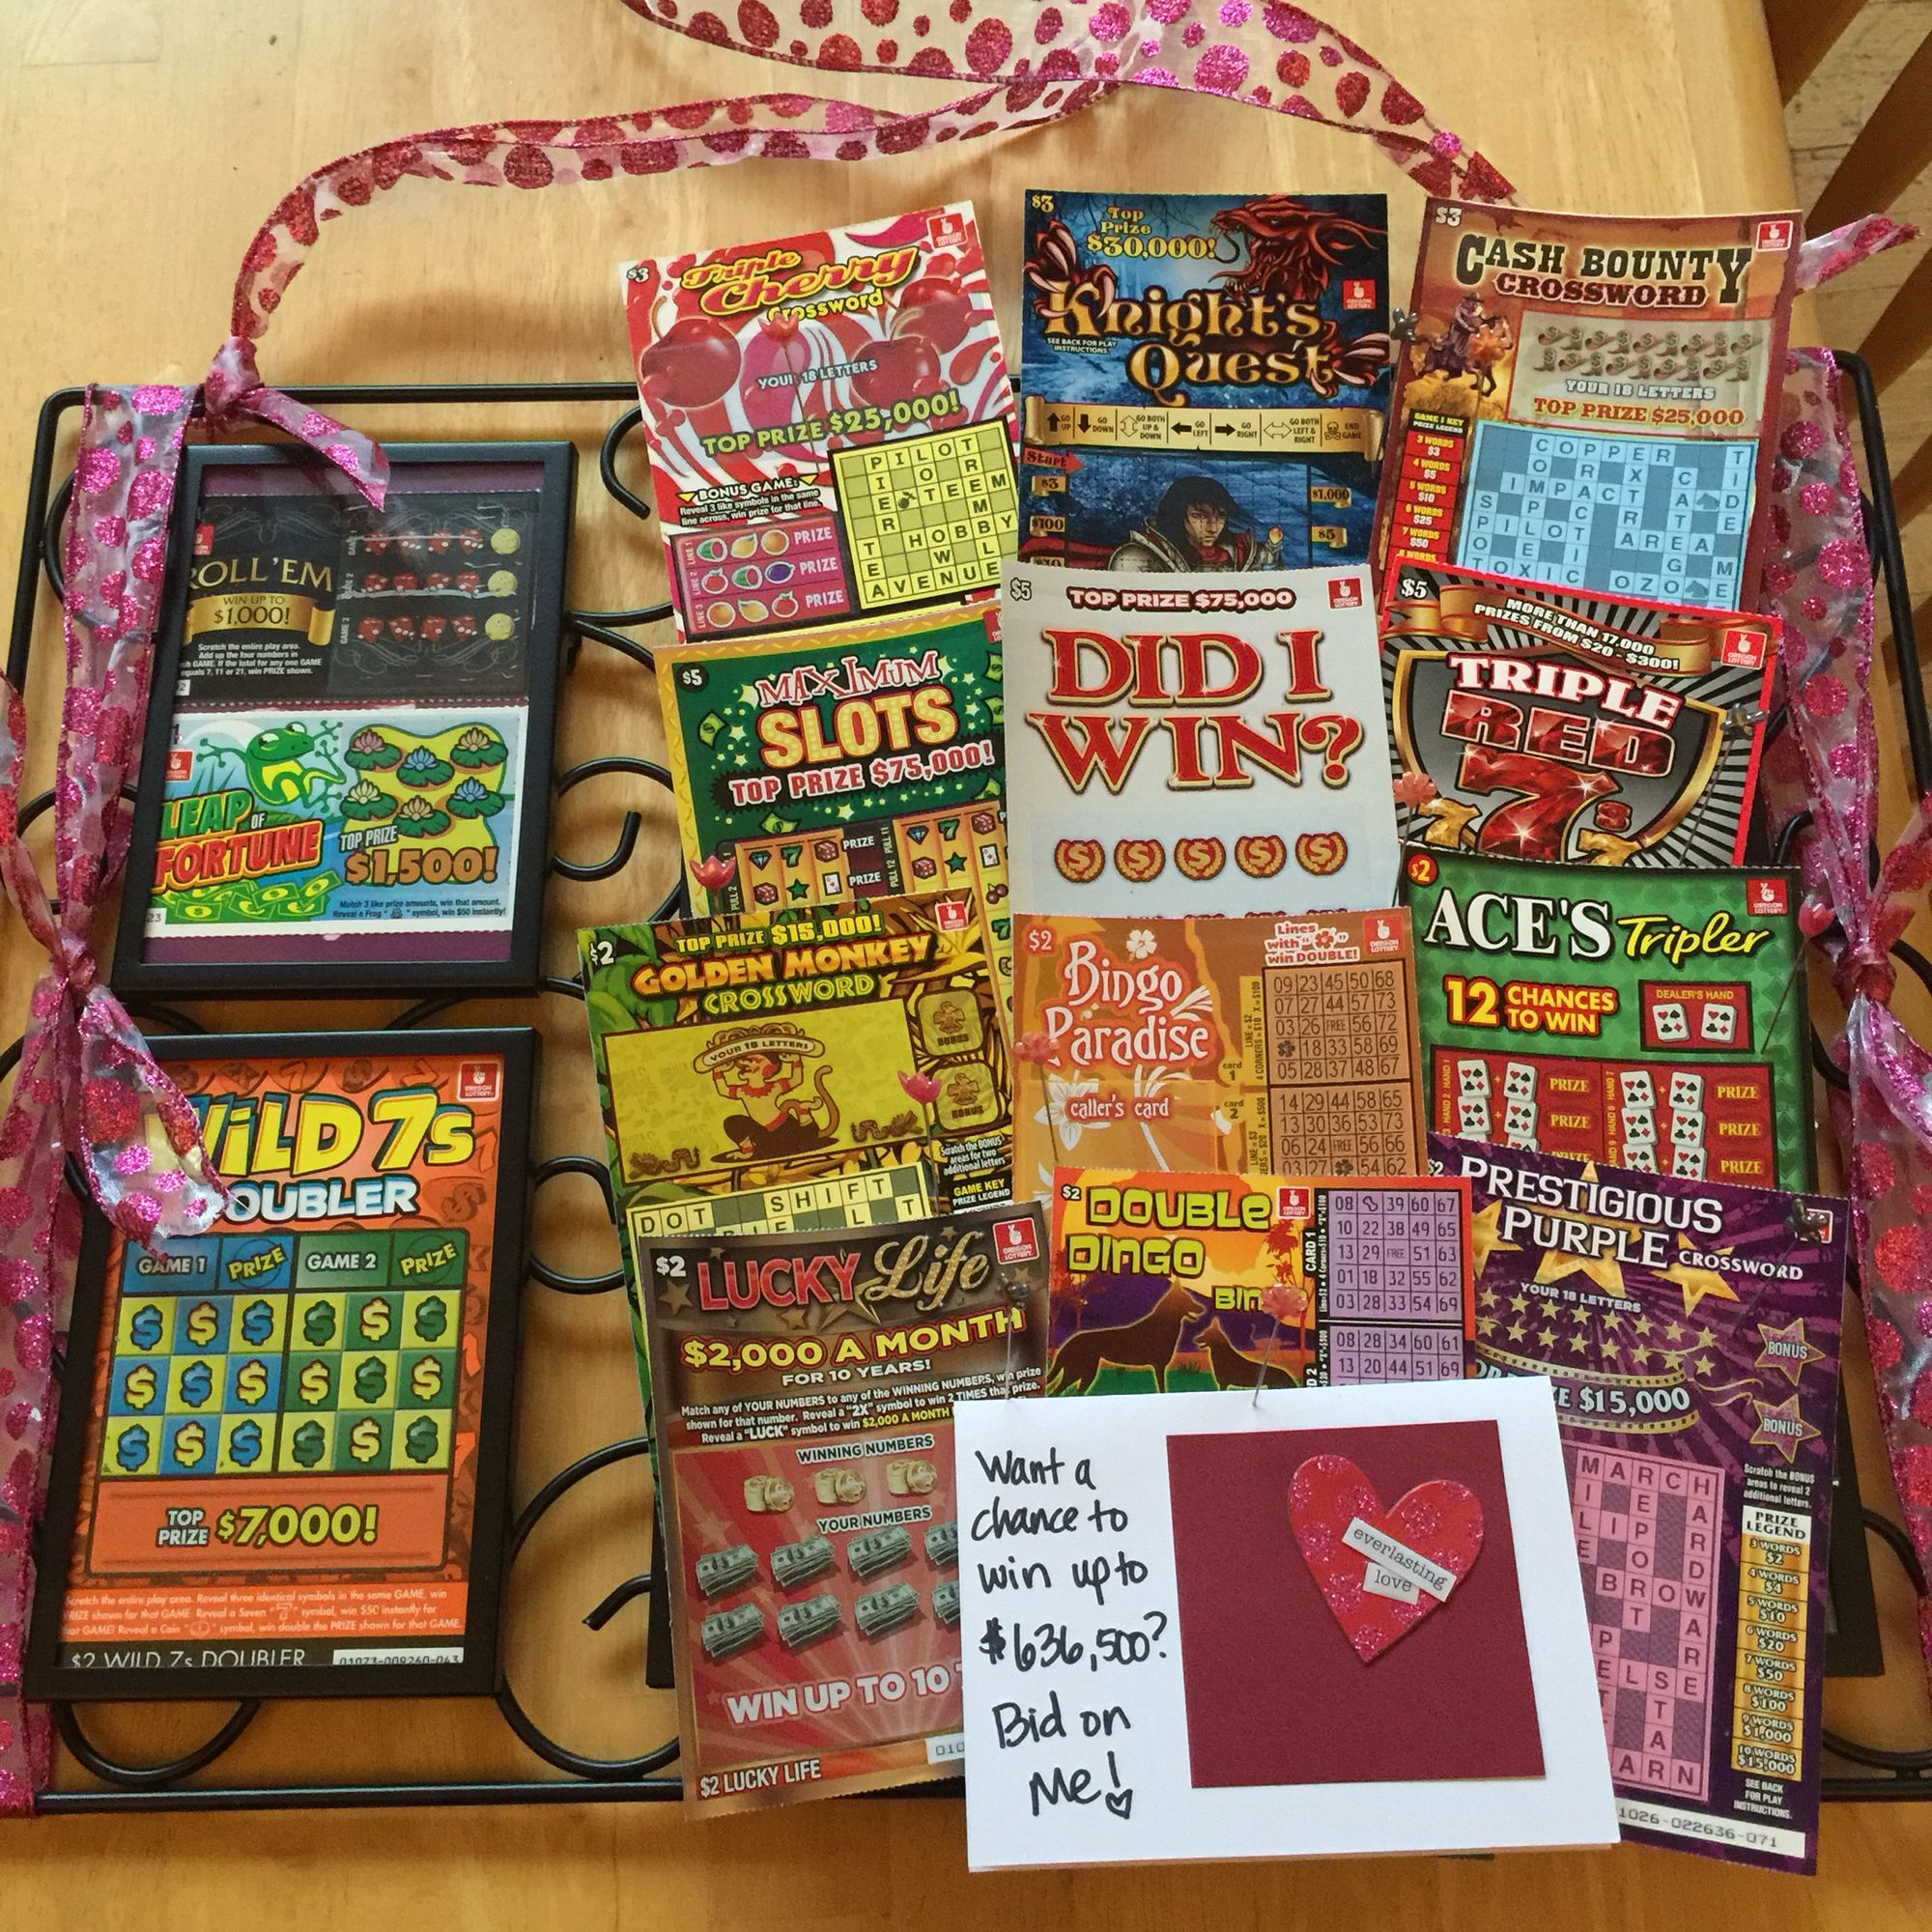 Lottery Tickets on a cork board picture frame...bid for a chance to get lucky!!